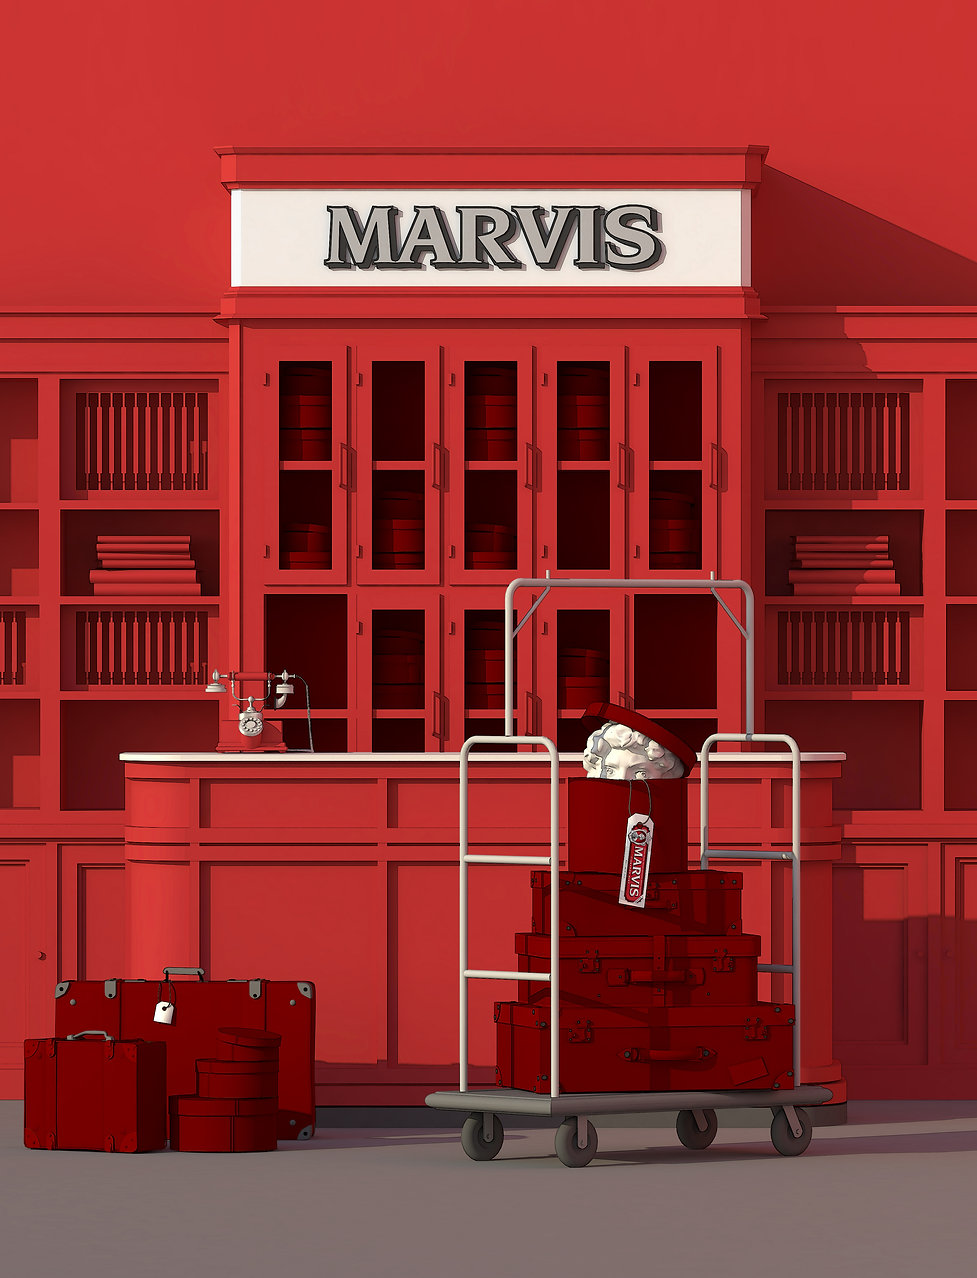 02_MARVIS COLLECTIVE PROJECT_Website.jpg